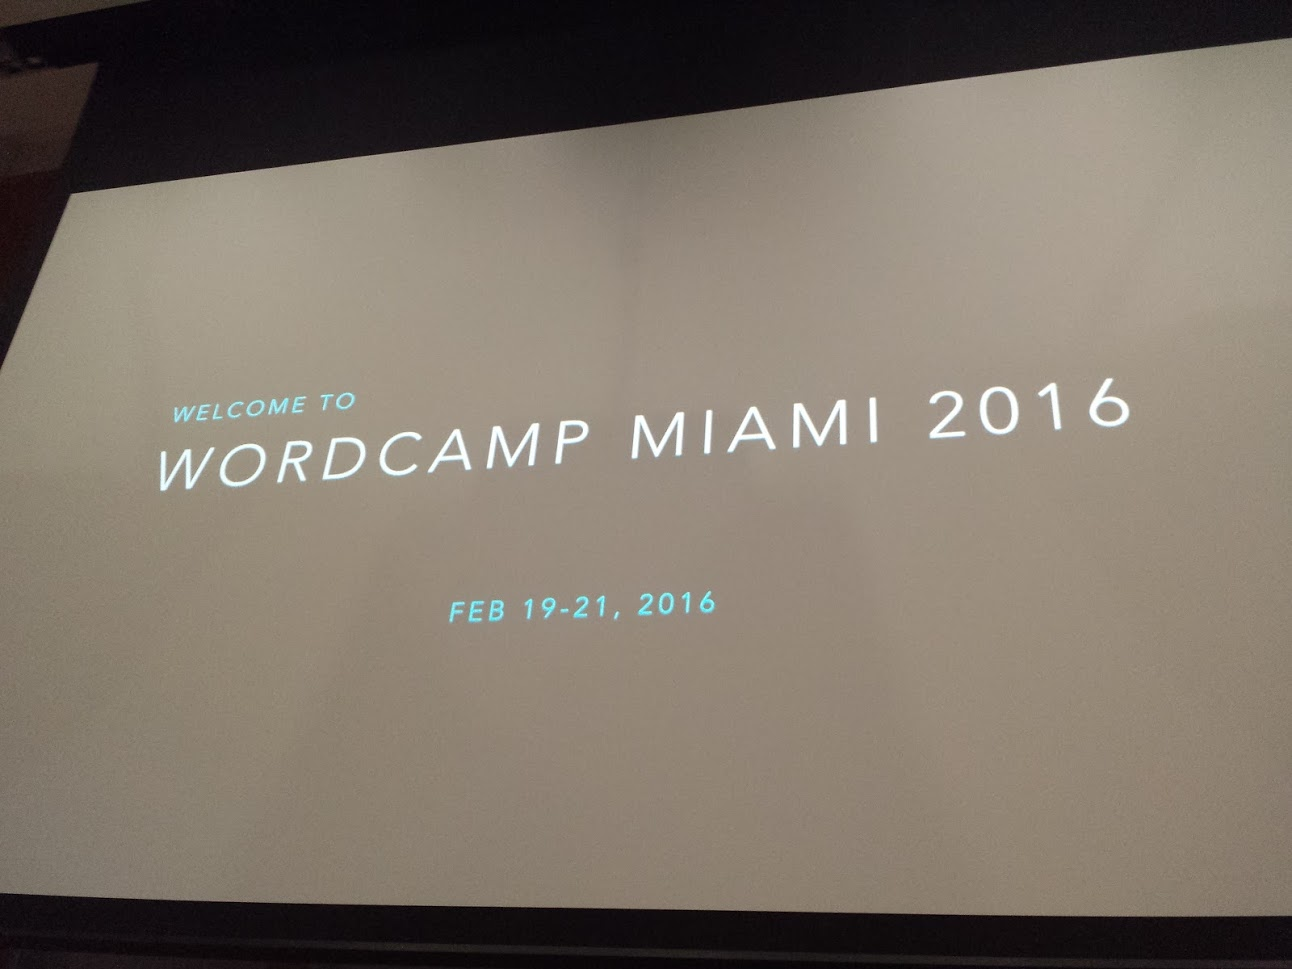 Welcome to WordCamp Miami 2016 - Opening Remarks